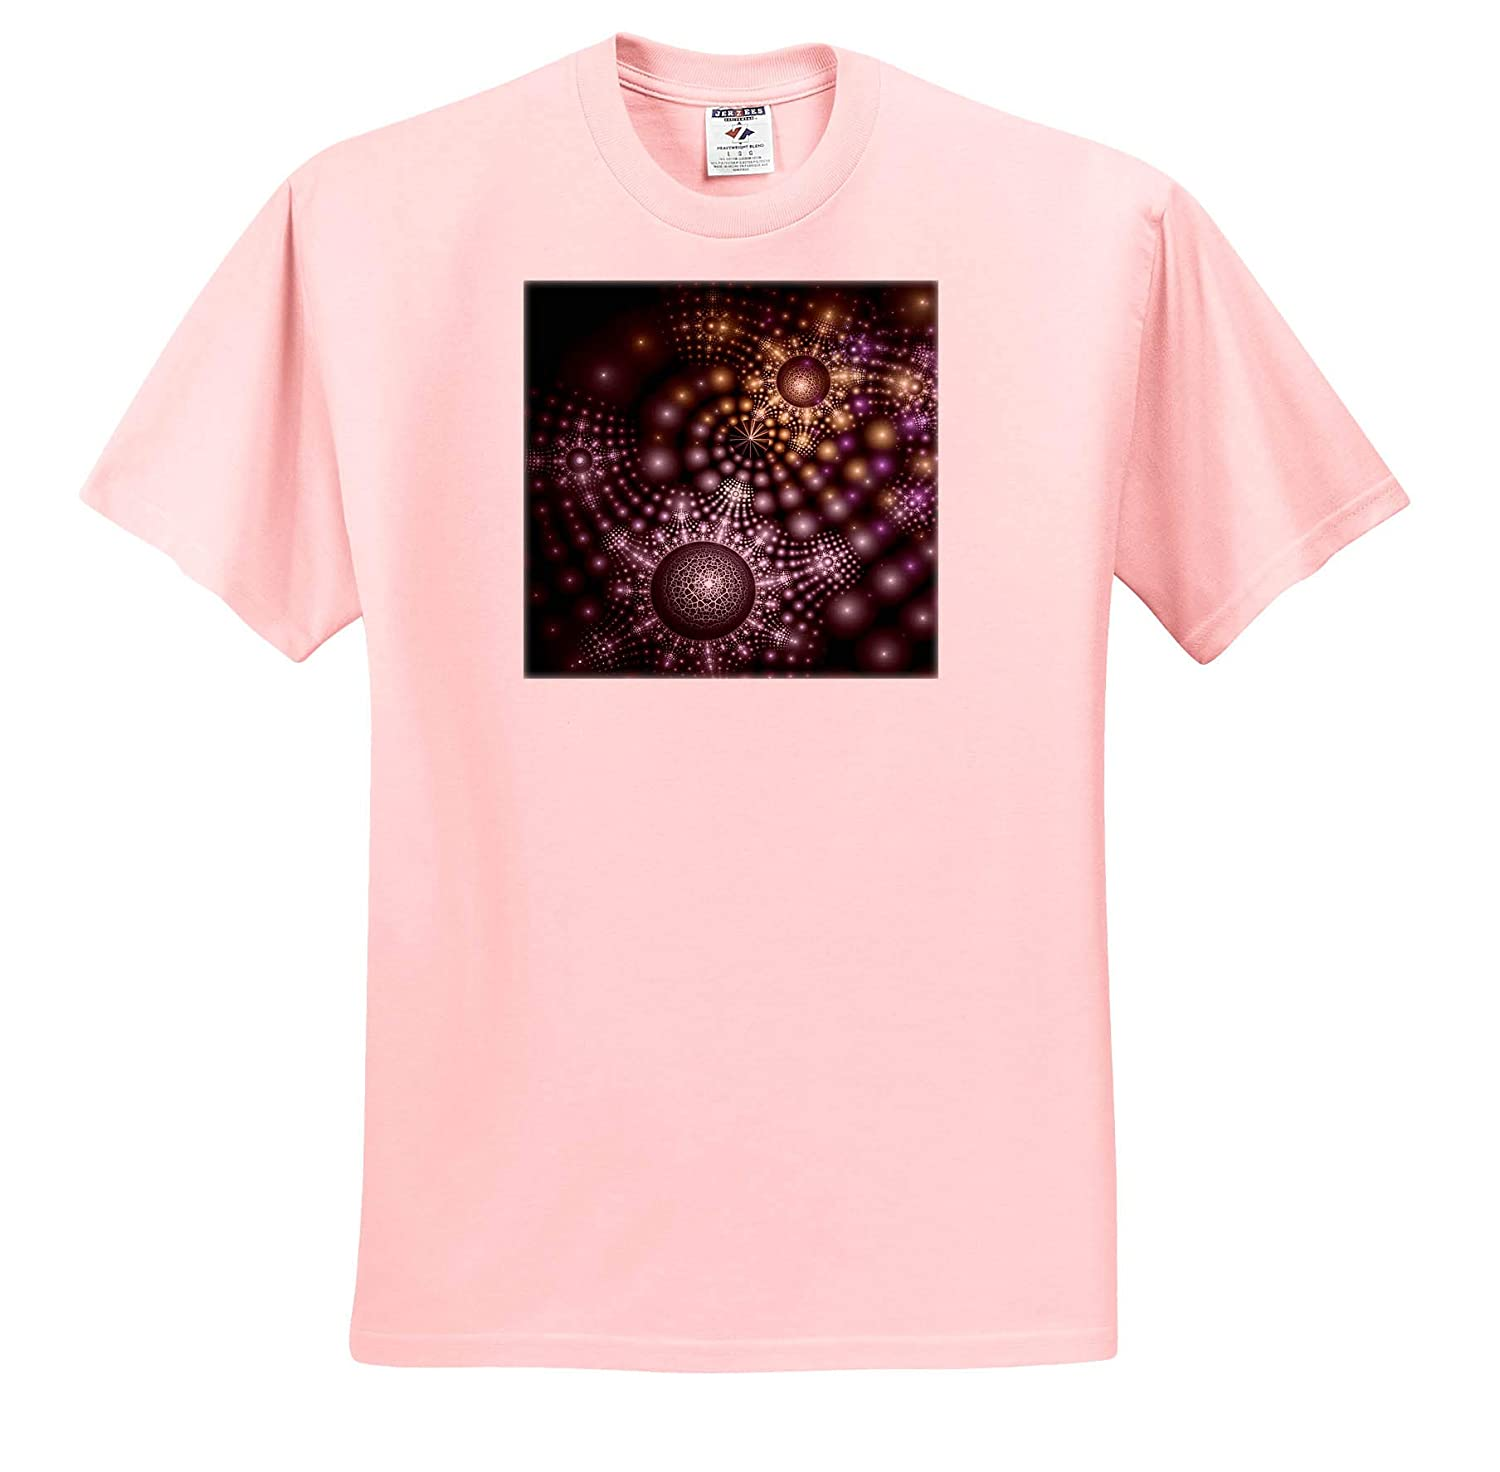 T-Shirts Modern Fractal Science Fiction Design 3dRose Andrea Haase Abstract Art and Design